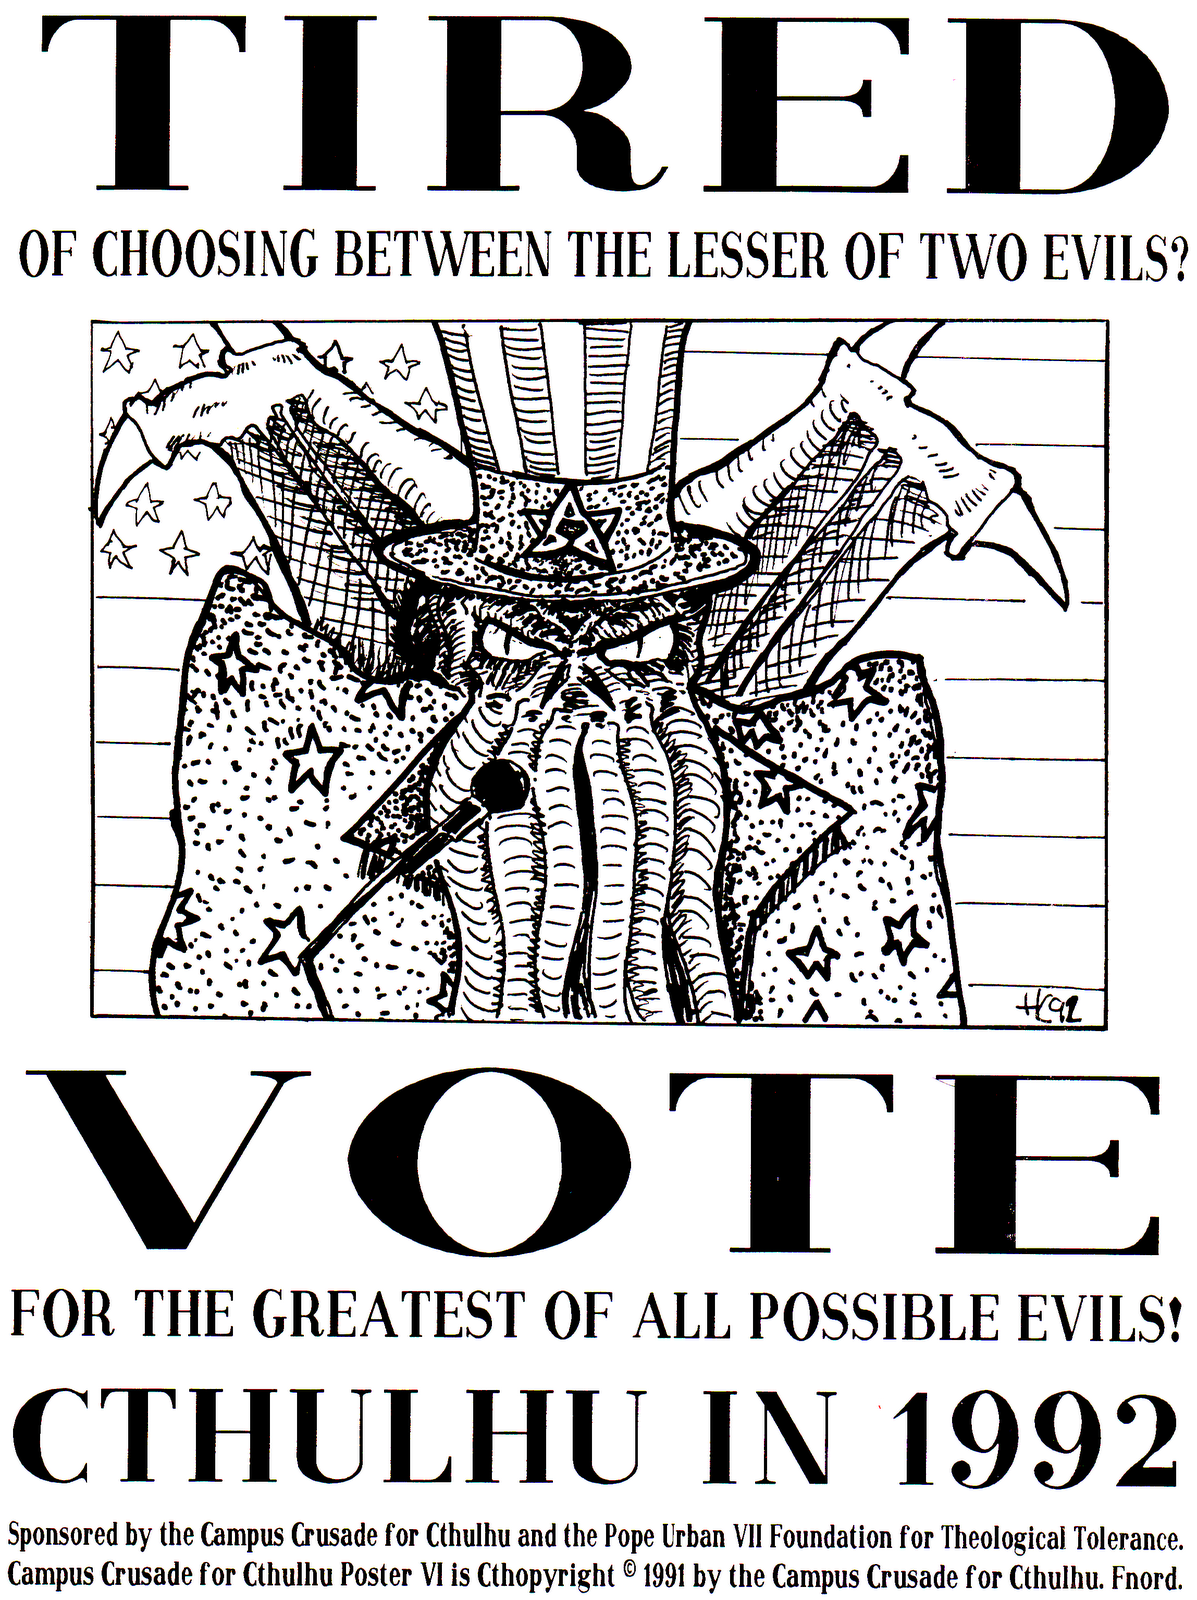 The Lovecraft Theodicy: Cthulhu has No Problem of Evil